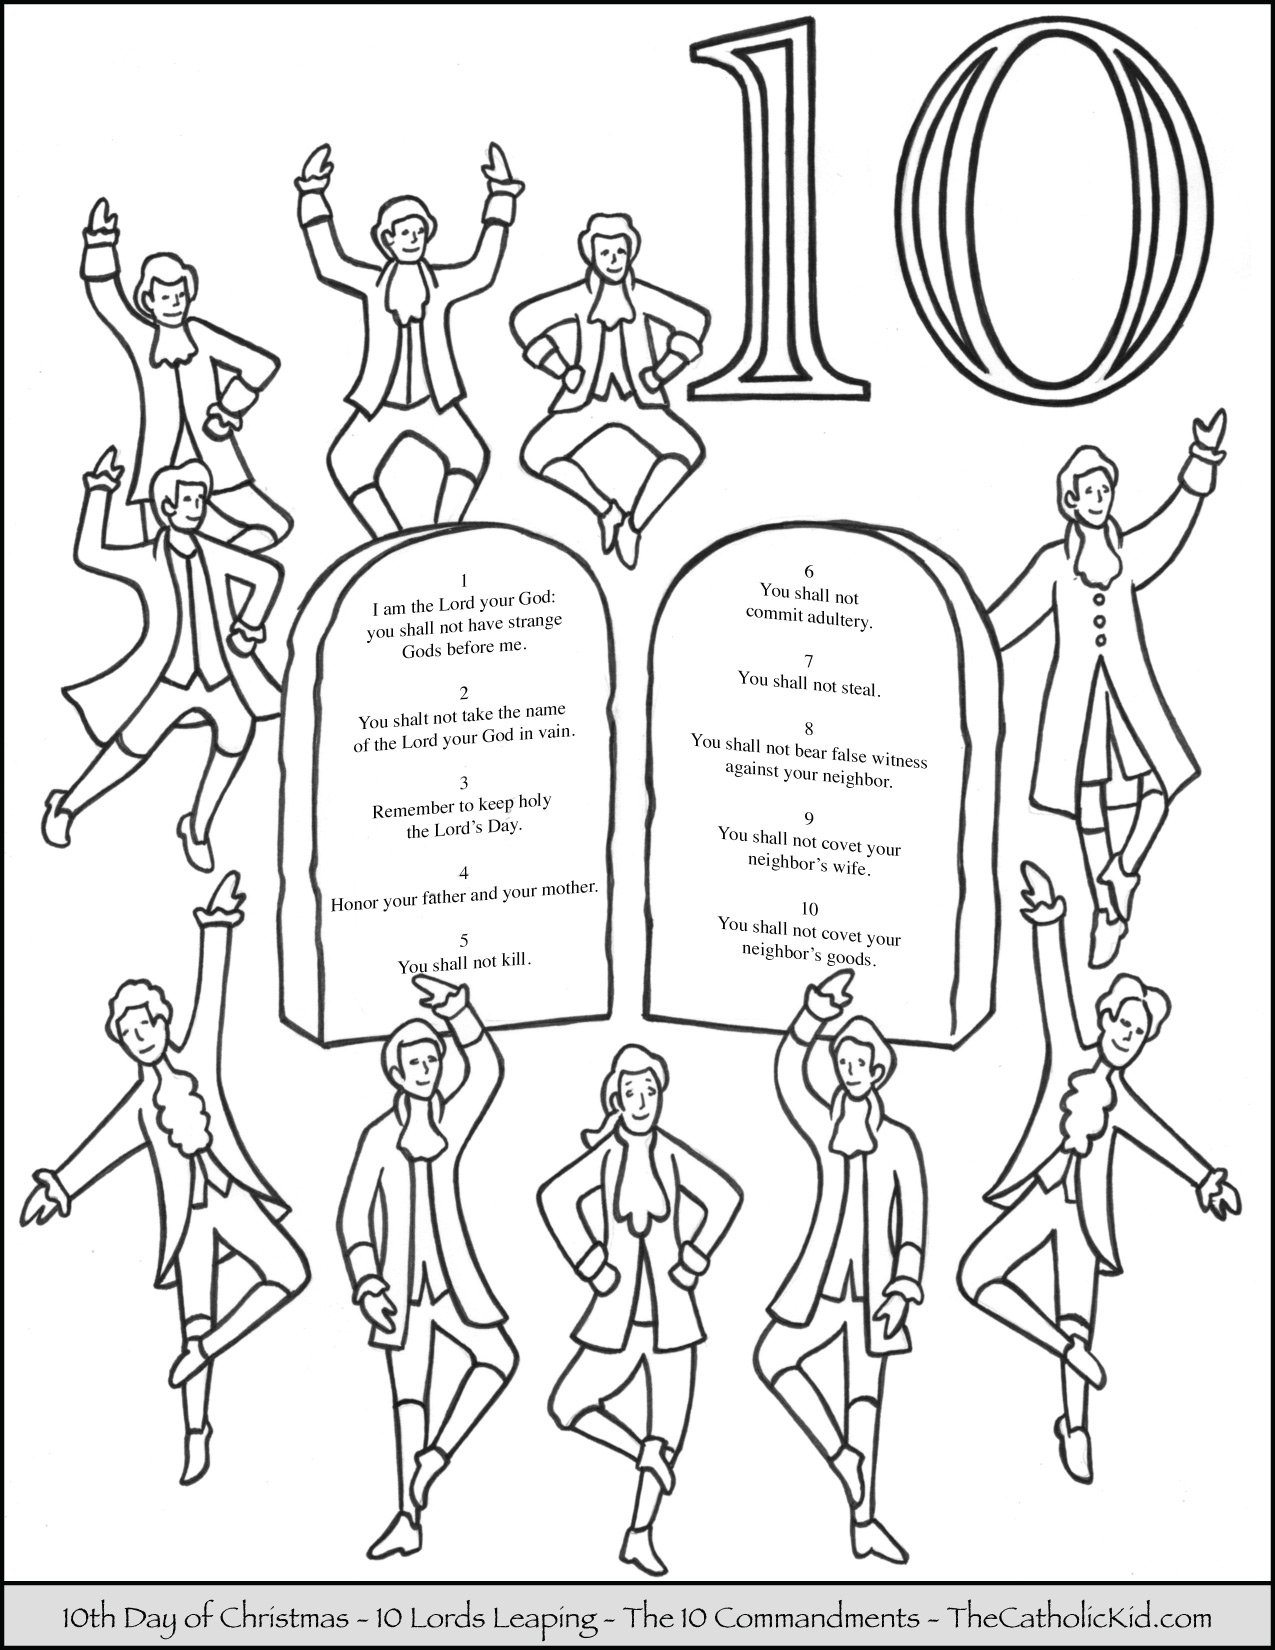 12 days of christmas coloring pages for 1st commandment coloring page